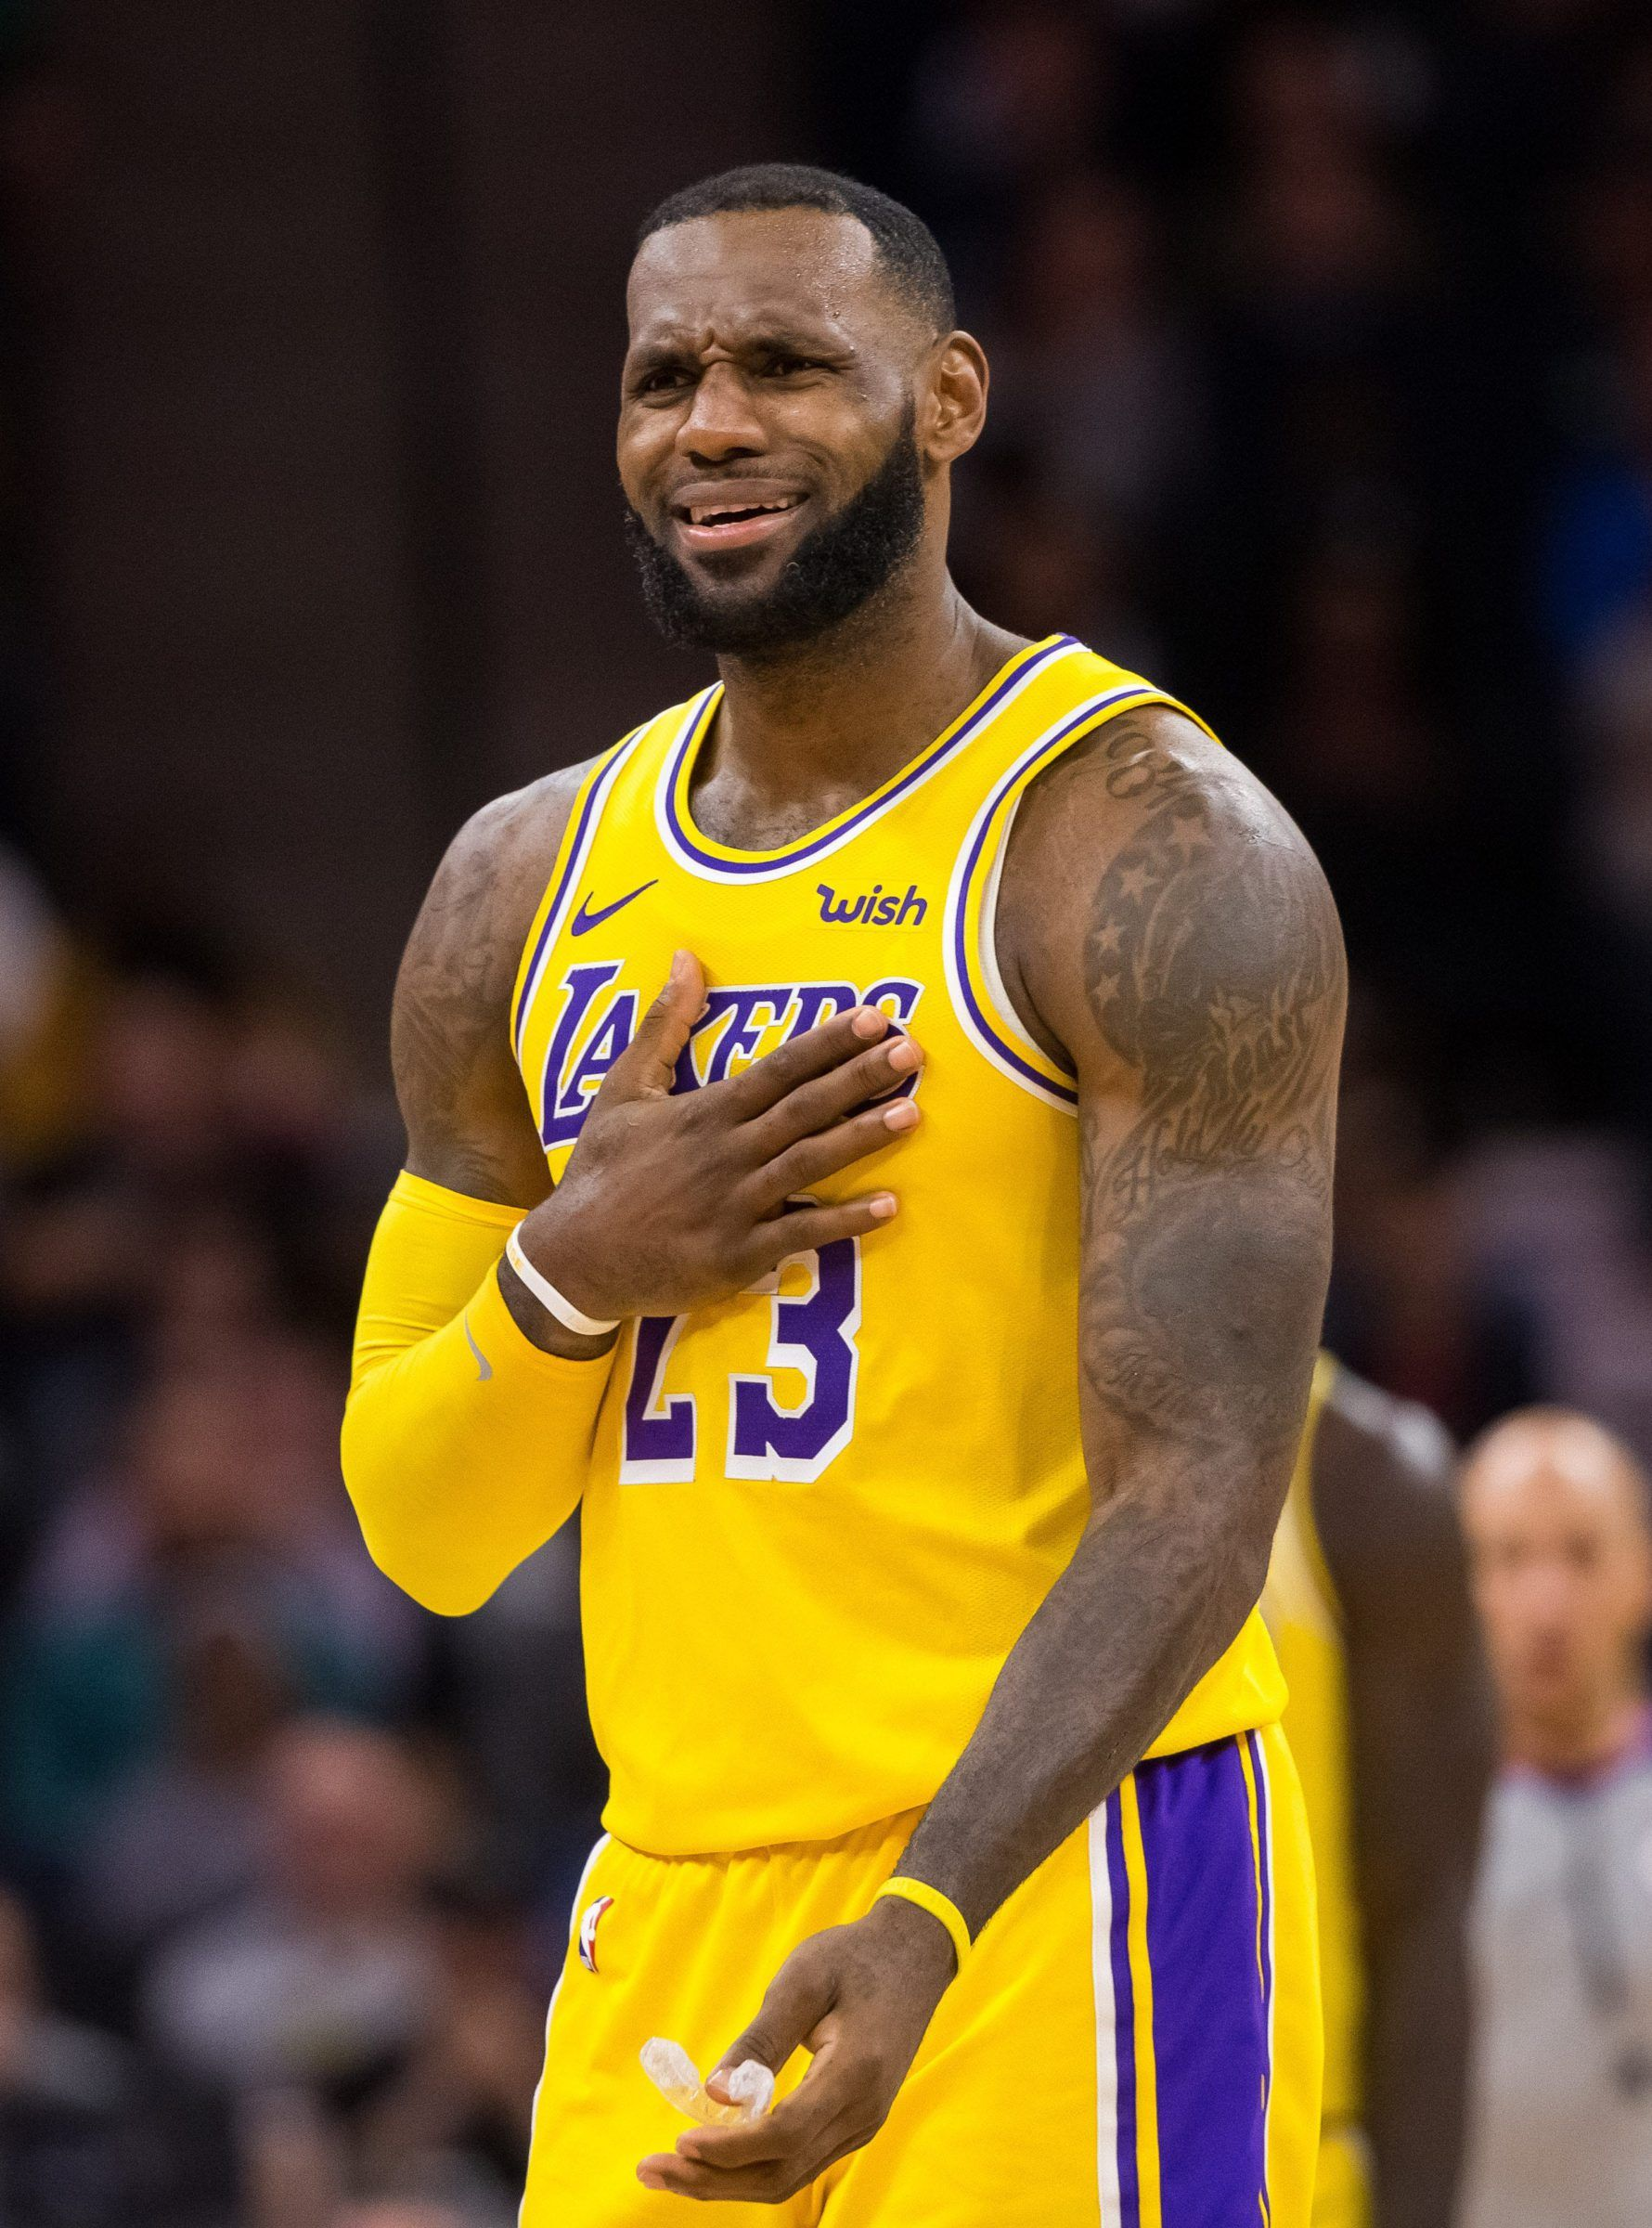 Lebron James In 2020 Lebron James Lebron Lakers